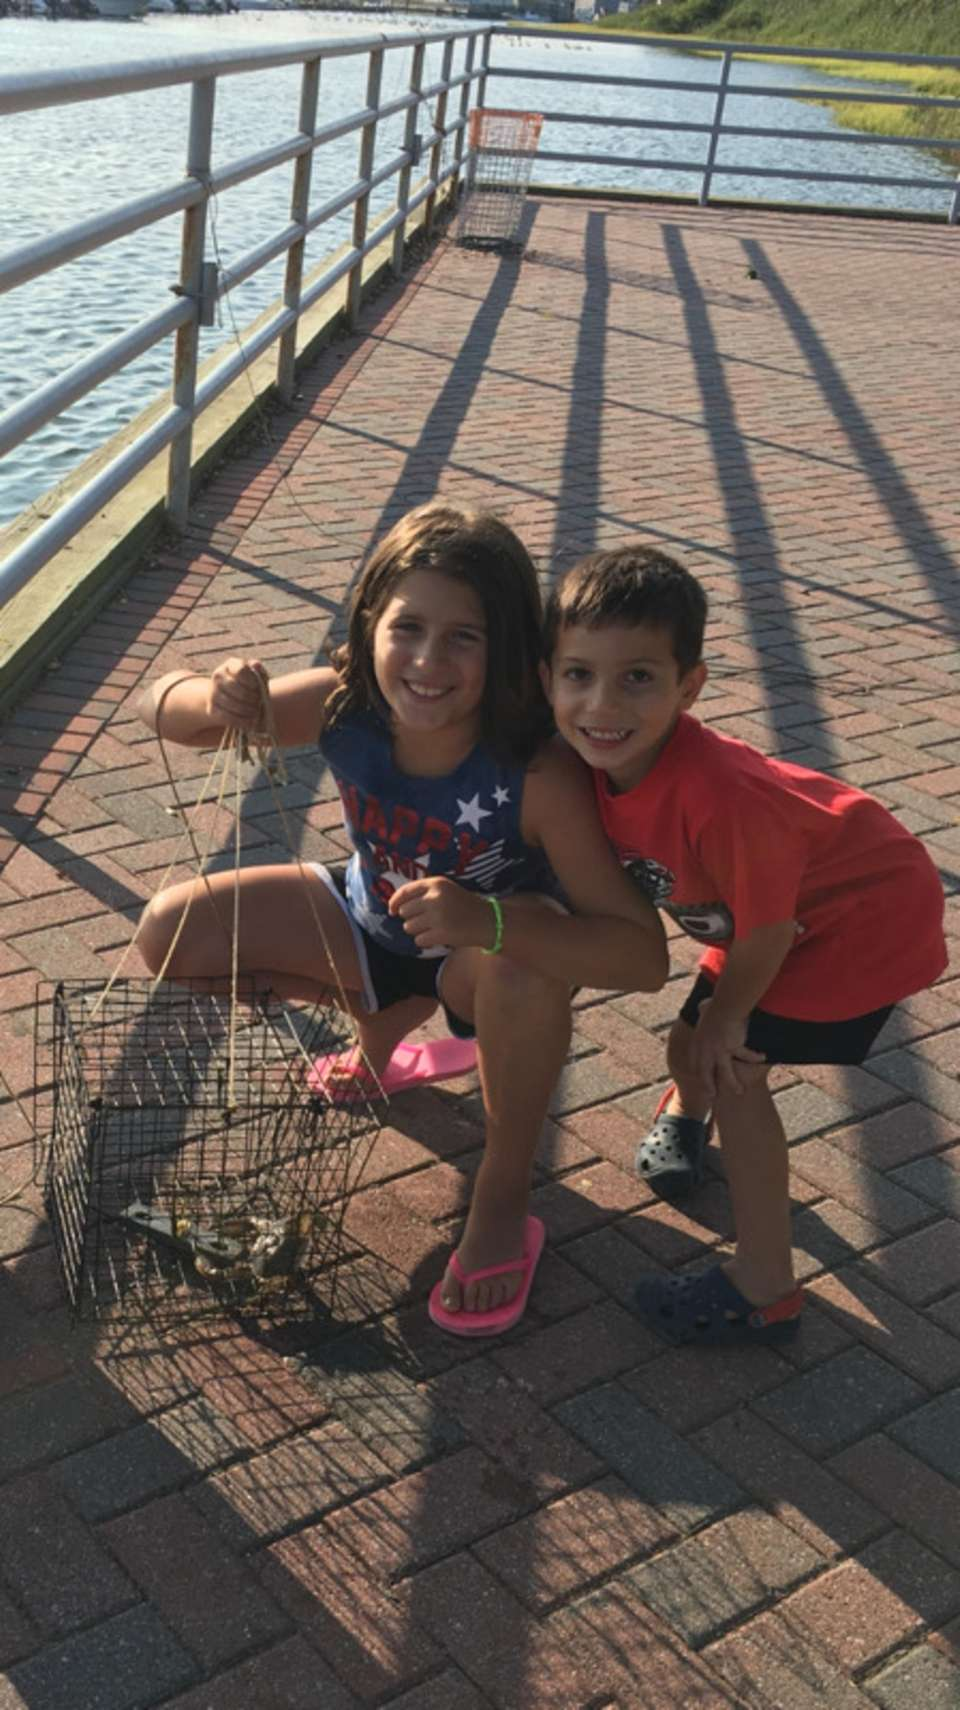 Sophia Masone and brother Michael Masone crabbing and